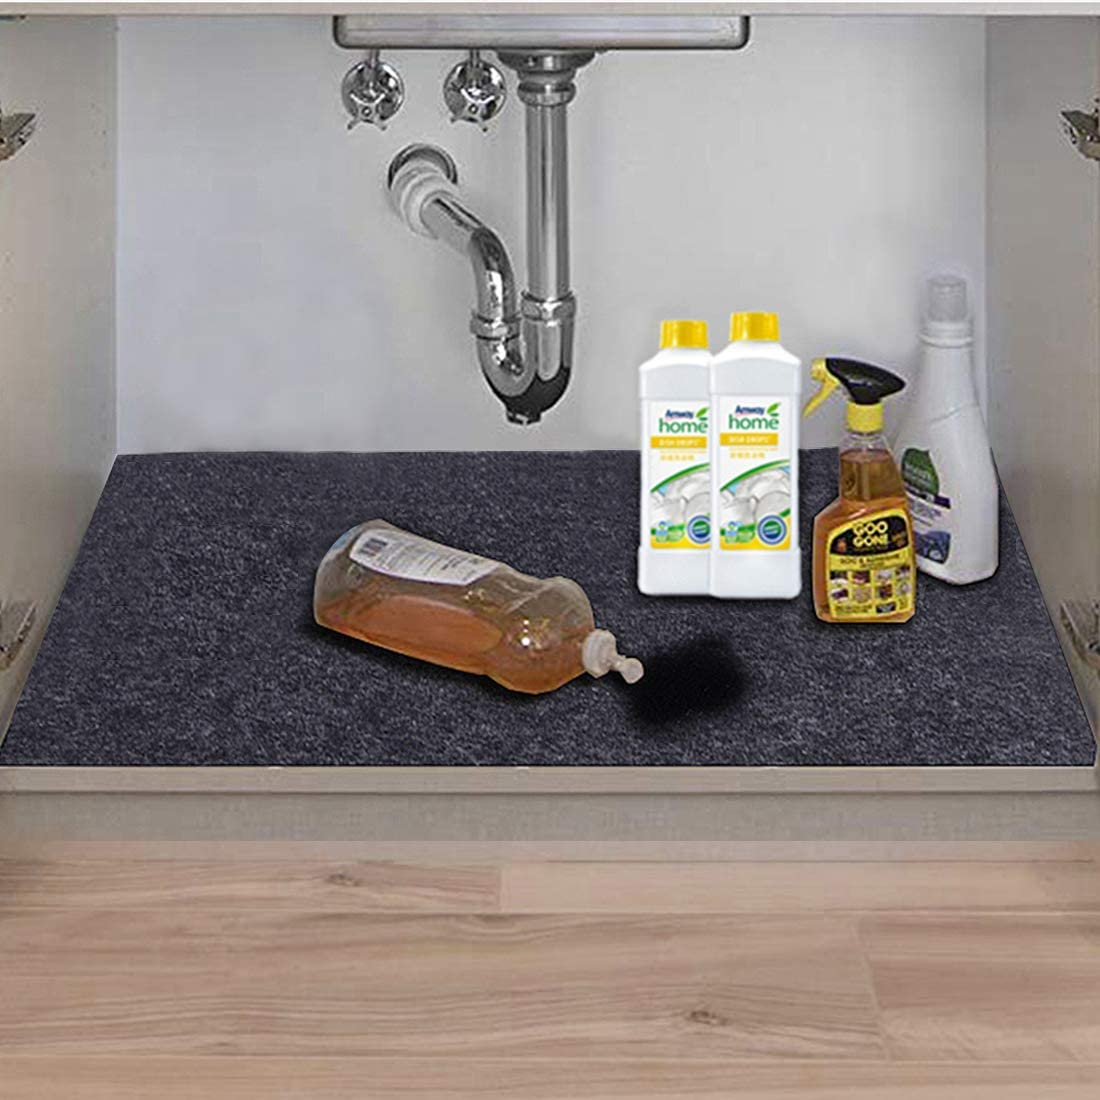 Under The Sink Mat,Kitchen Tray Drip,Cabinet Liner,Fabric Layer,Waterproof Layer,Reusable,Washable (36inches x 36inches)